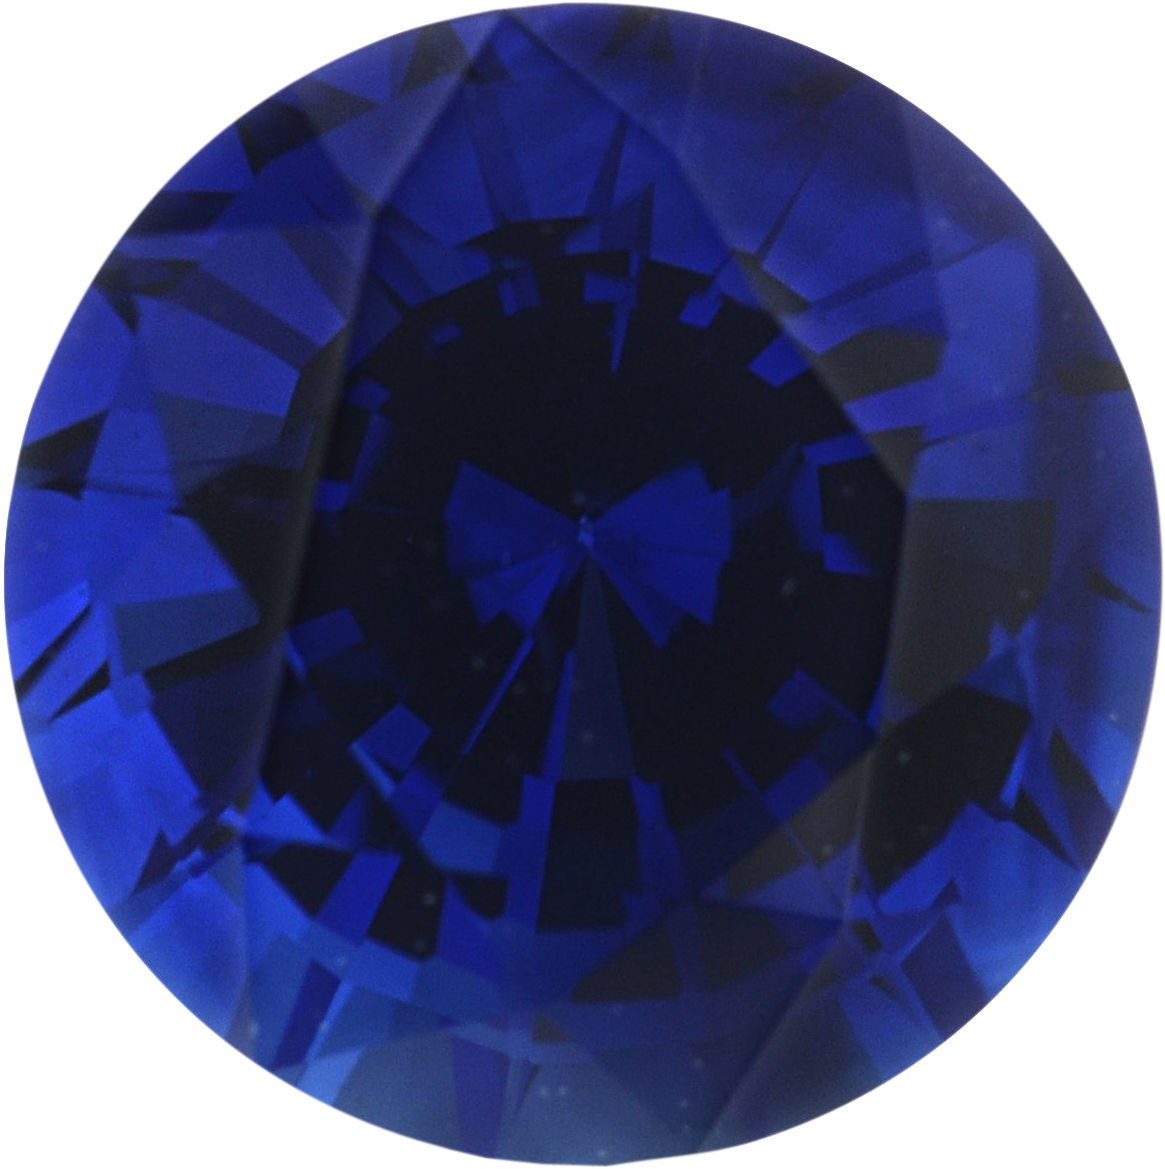 1.02 carats Blue Loose Sapphire Gemstone in Round Cut, 5.88 mm